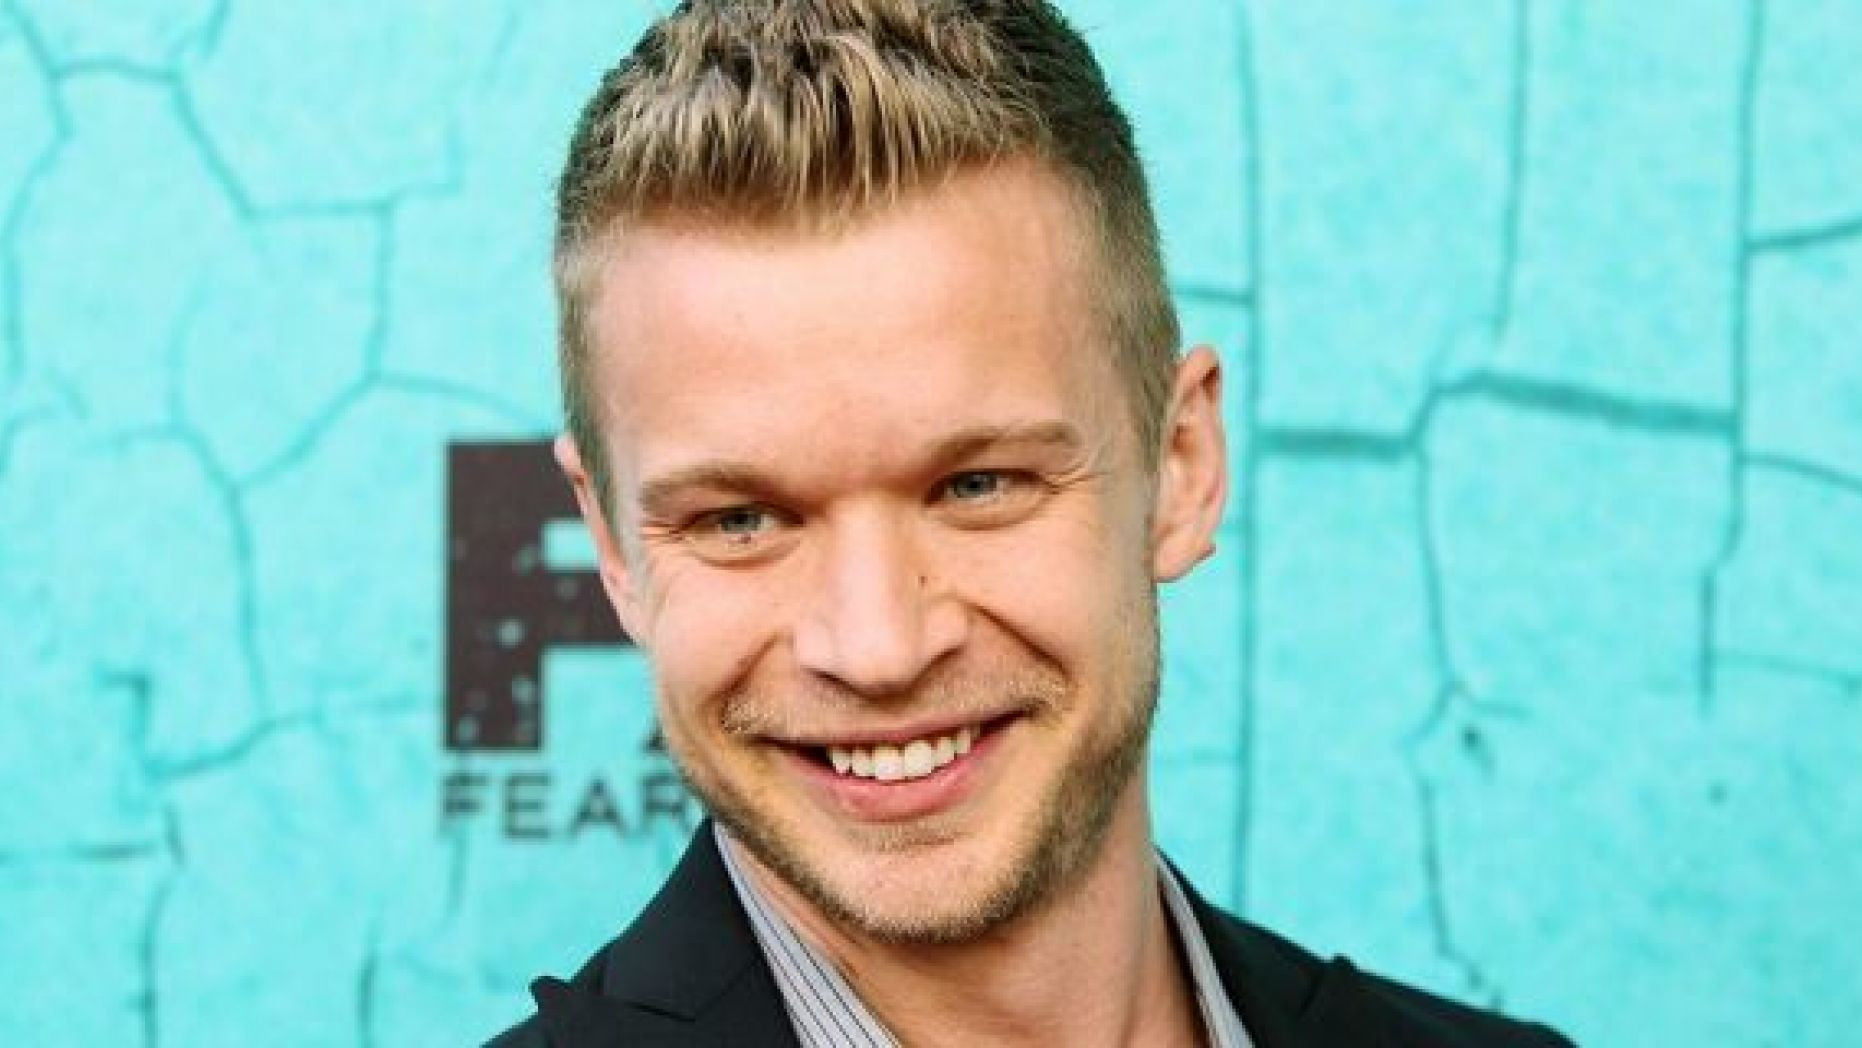 Glee Actor Jesse Luken Busted For Drunk Driving|Bio: Movies, TV Shows, Net Worth, And Wiki-facts!